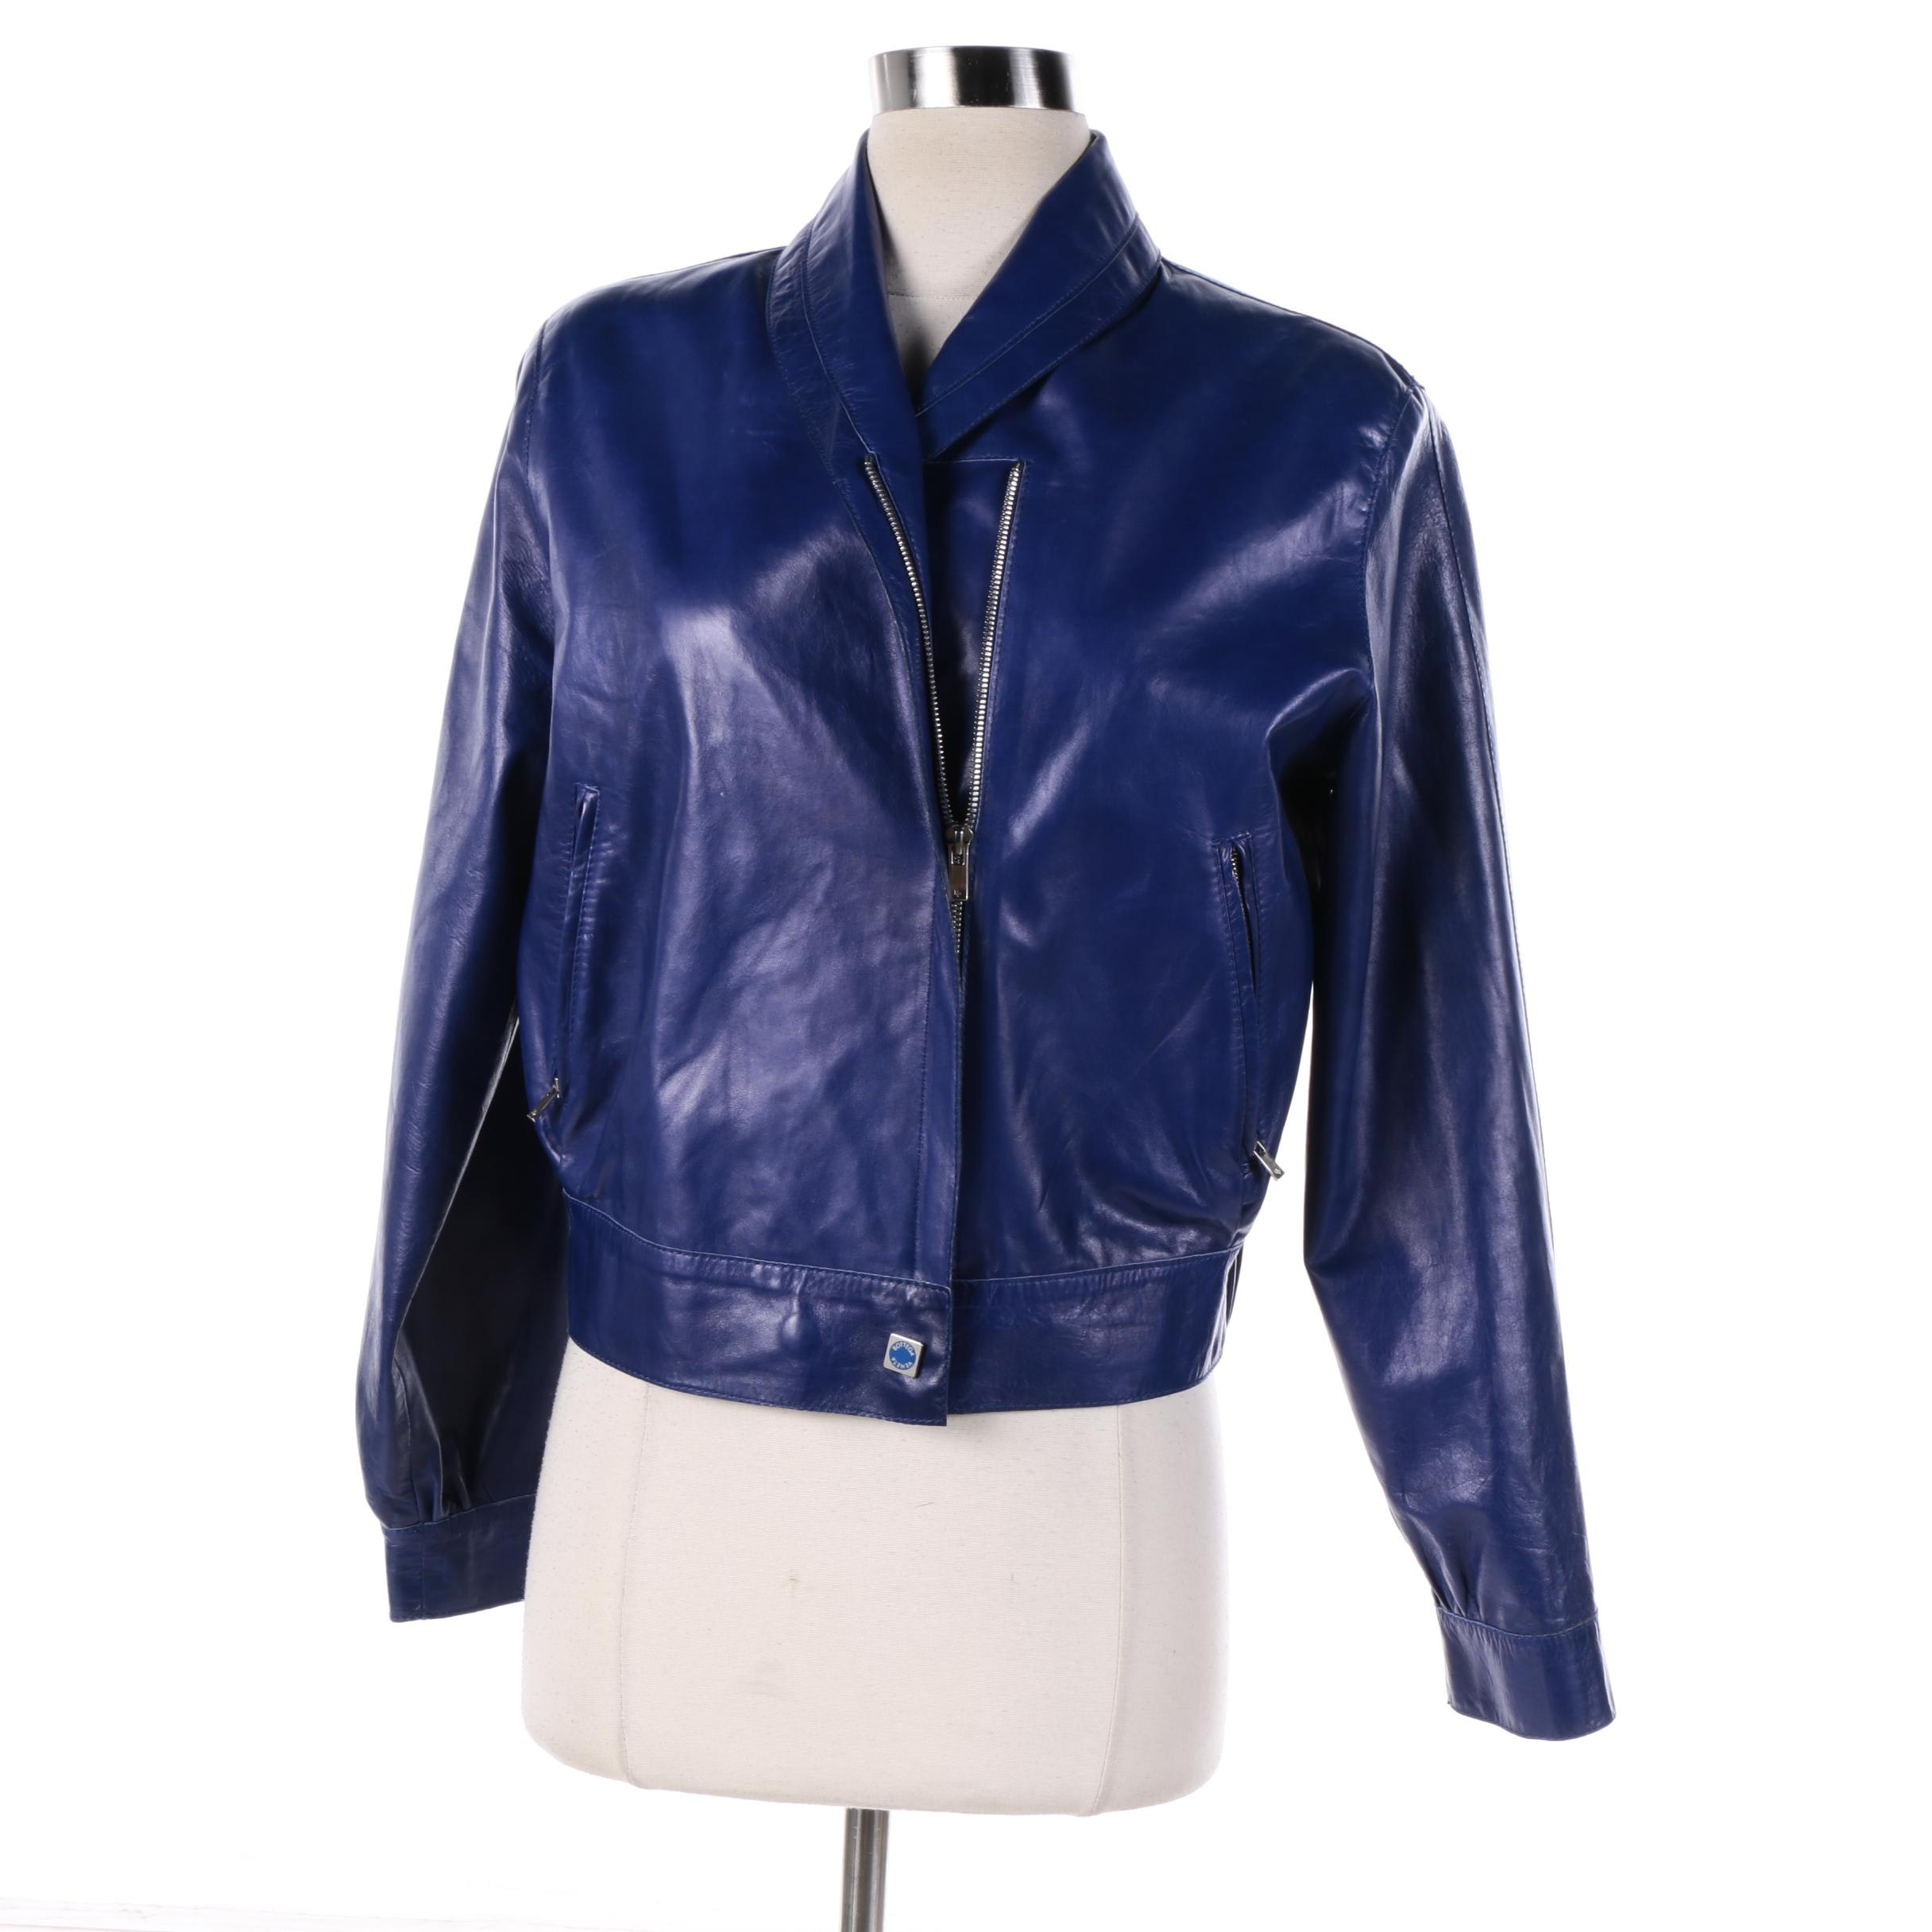 Women's Vintage Bottega Veneta Blue Leather Jacket